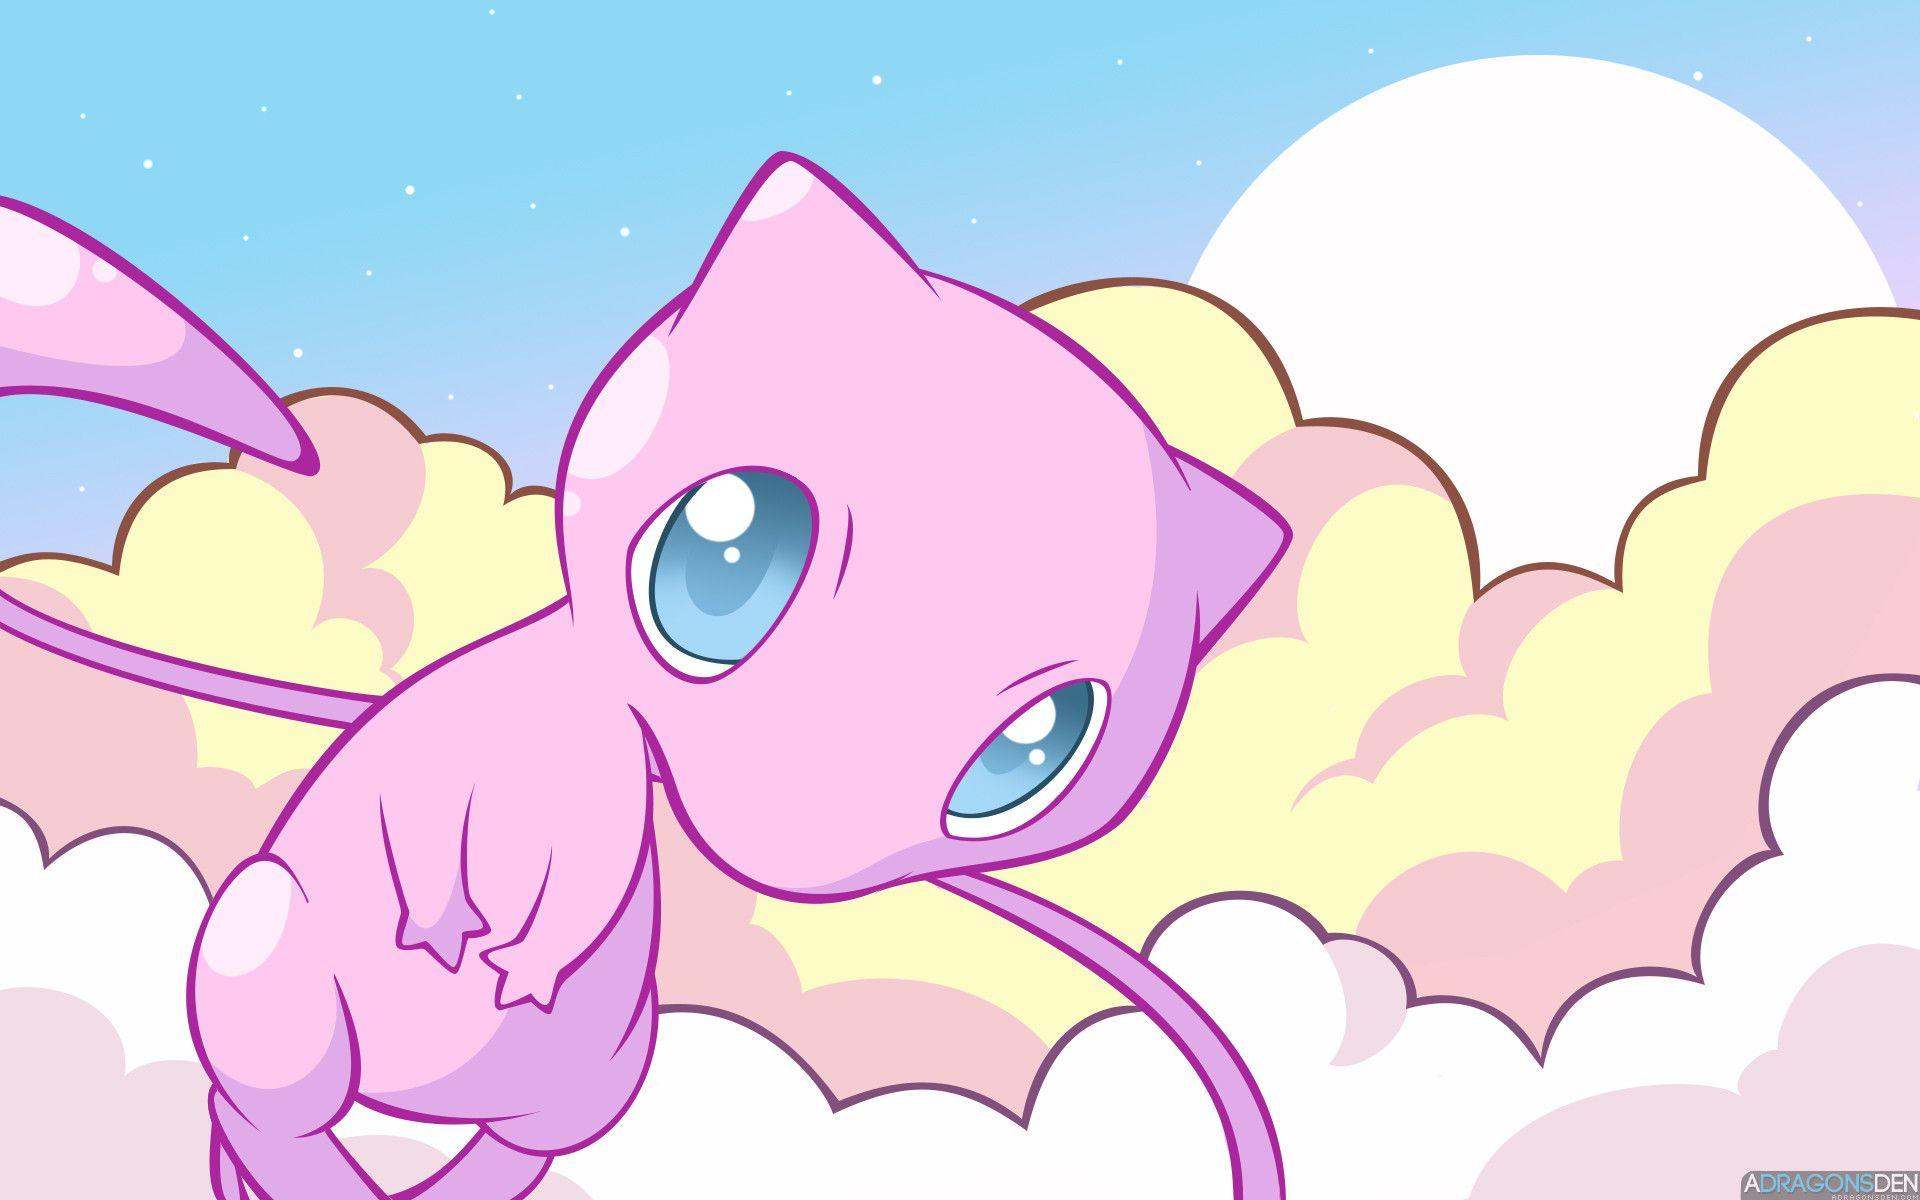 Mew the Pokemon image Mew in the Clouds HD wallpapers and